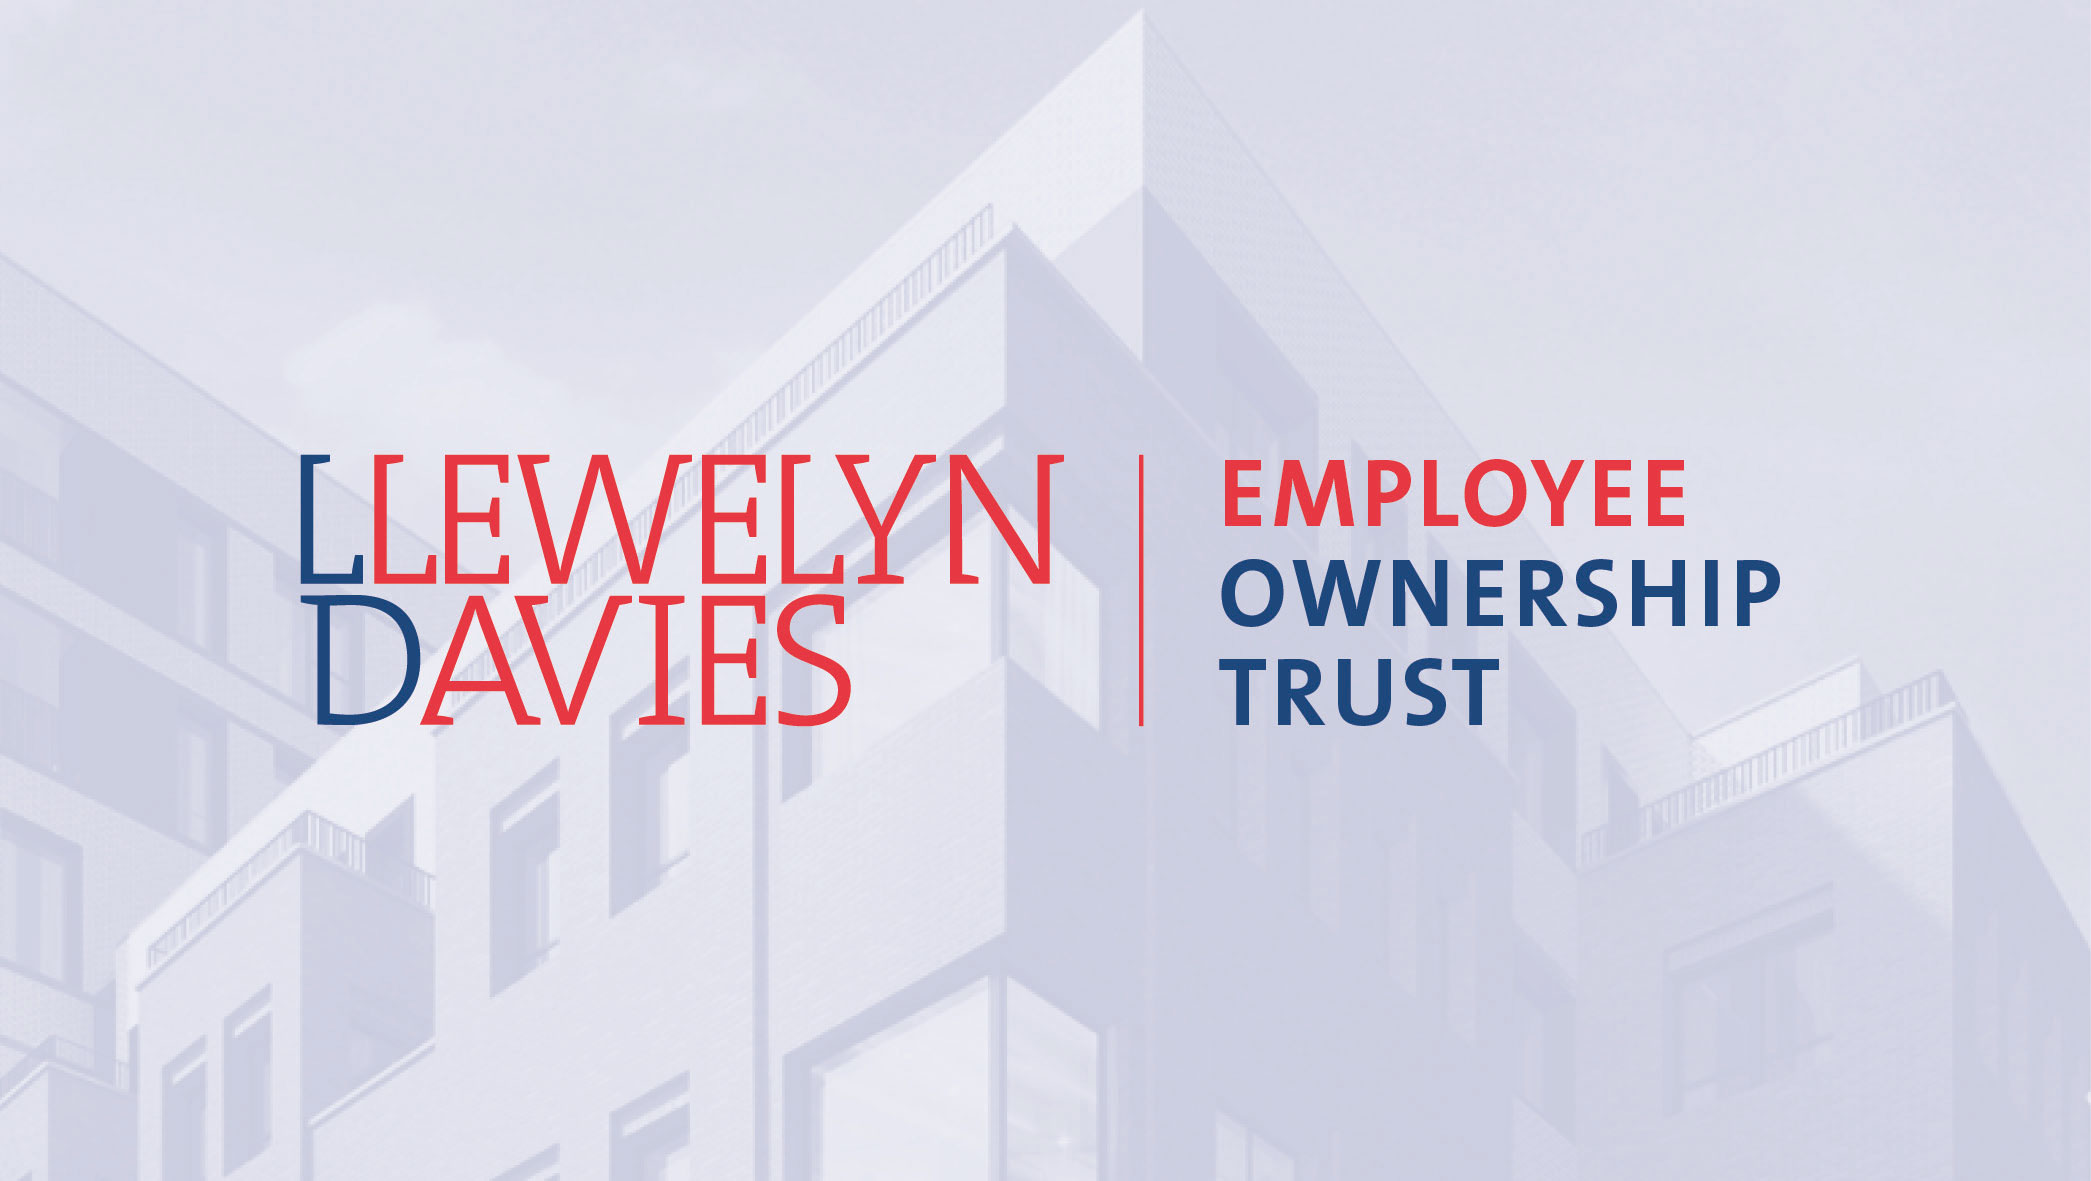 Llewelyn Davies transition to Employee Ownership Trust